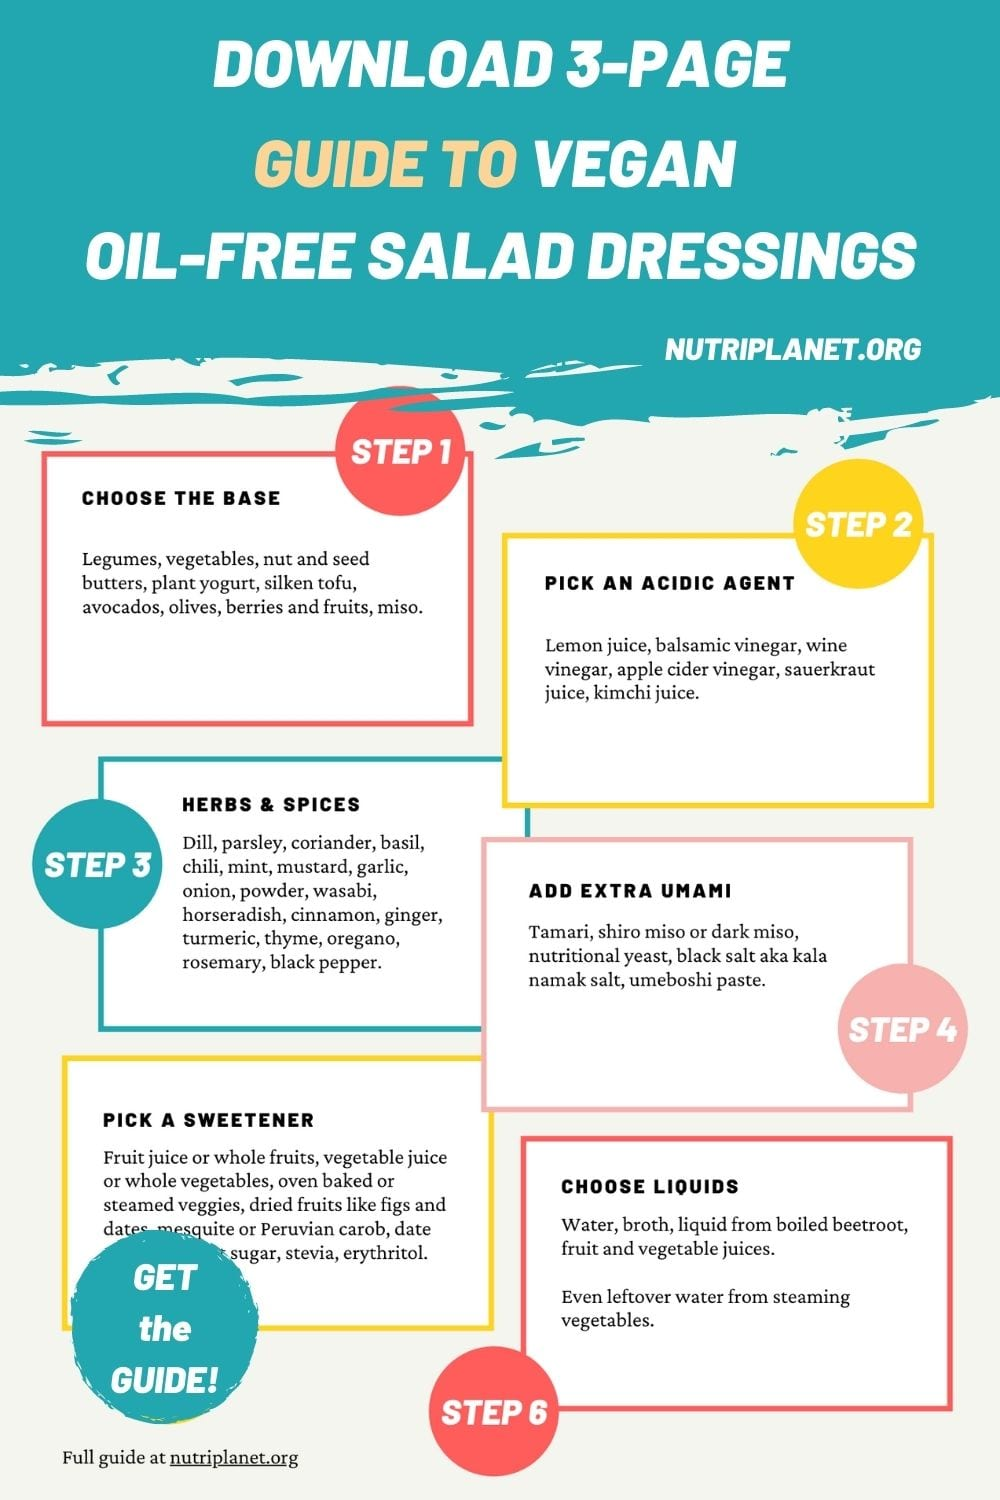 Download a printable step-by-step guide of how to make vegan oil-free salad dressings.